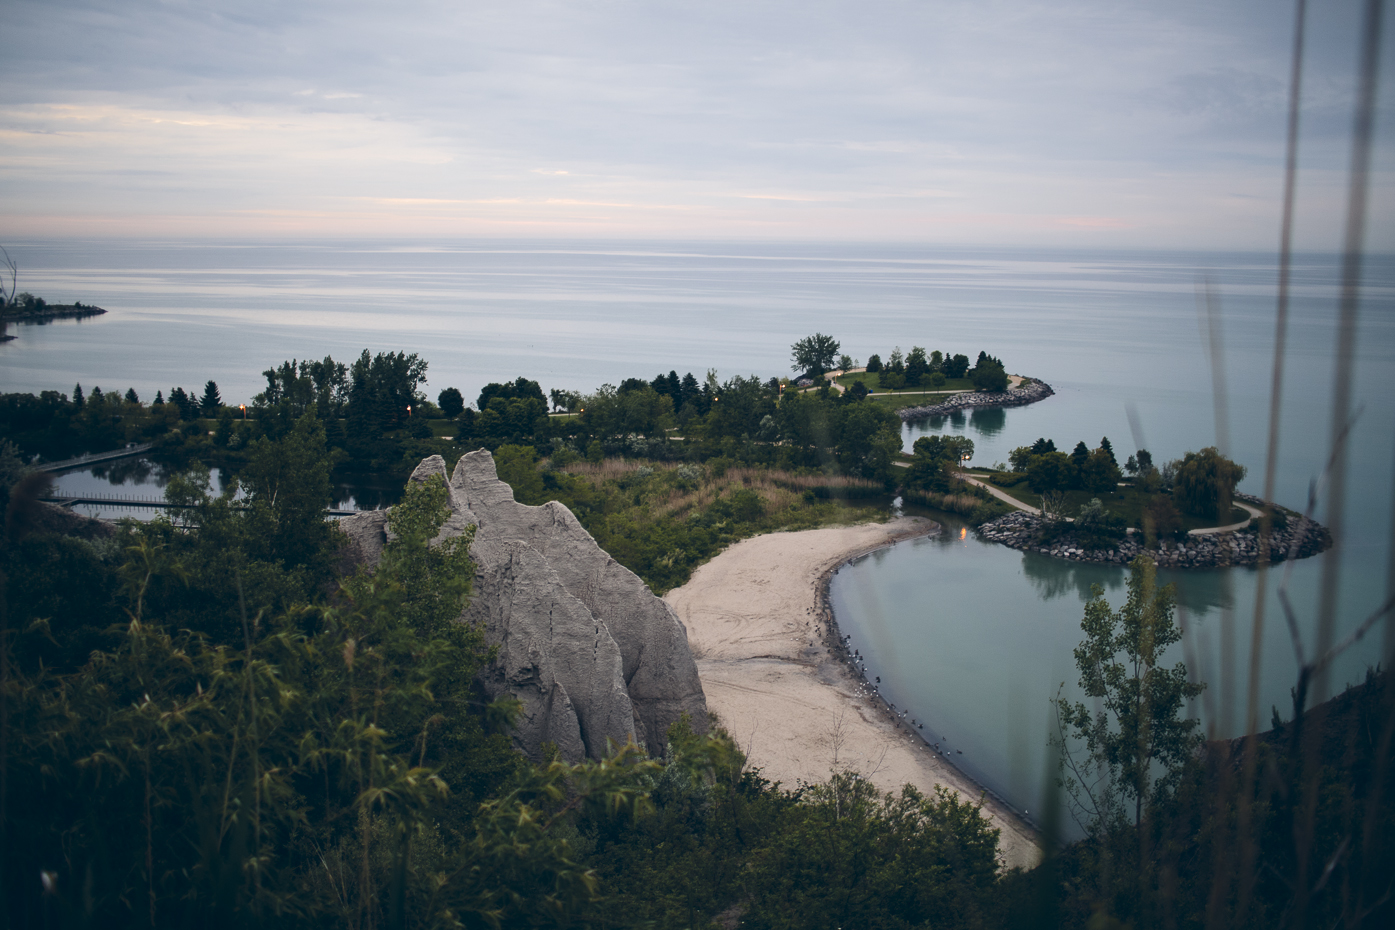 Scarborough Bluffs Park. View from above at sunrise